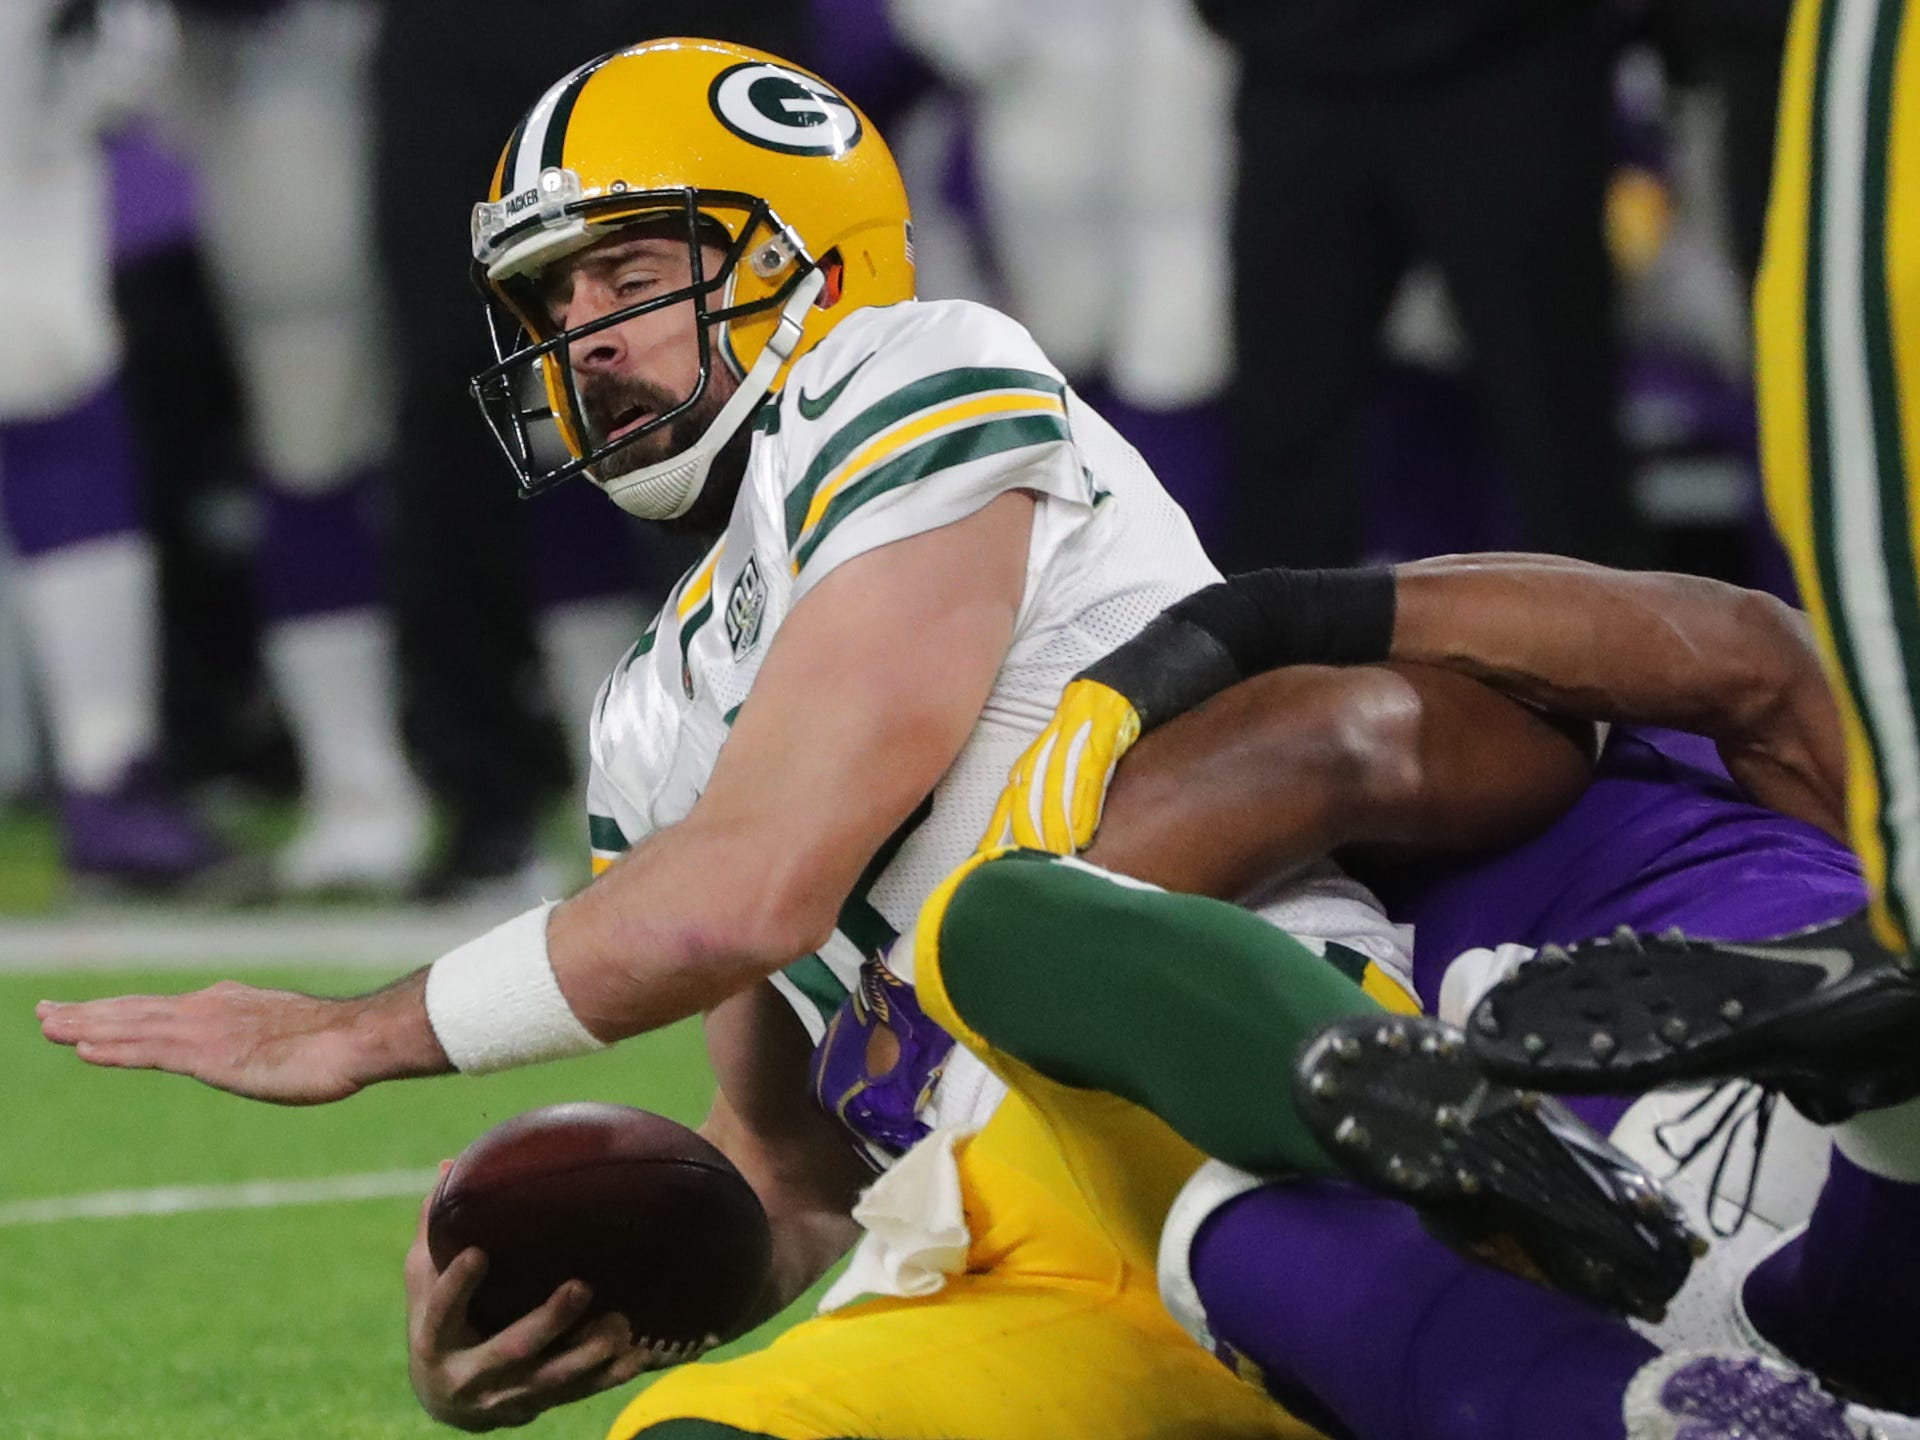 Green Bay Packers quarterback Aaron Rodgers (12) is sacked during the second quarter of their game against the Minnesota Vikings Sunday, November 25, 2018 at U.S. Bank Stadium in Minneapolis, Minn.